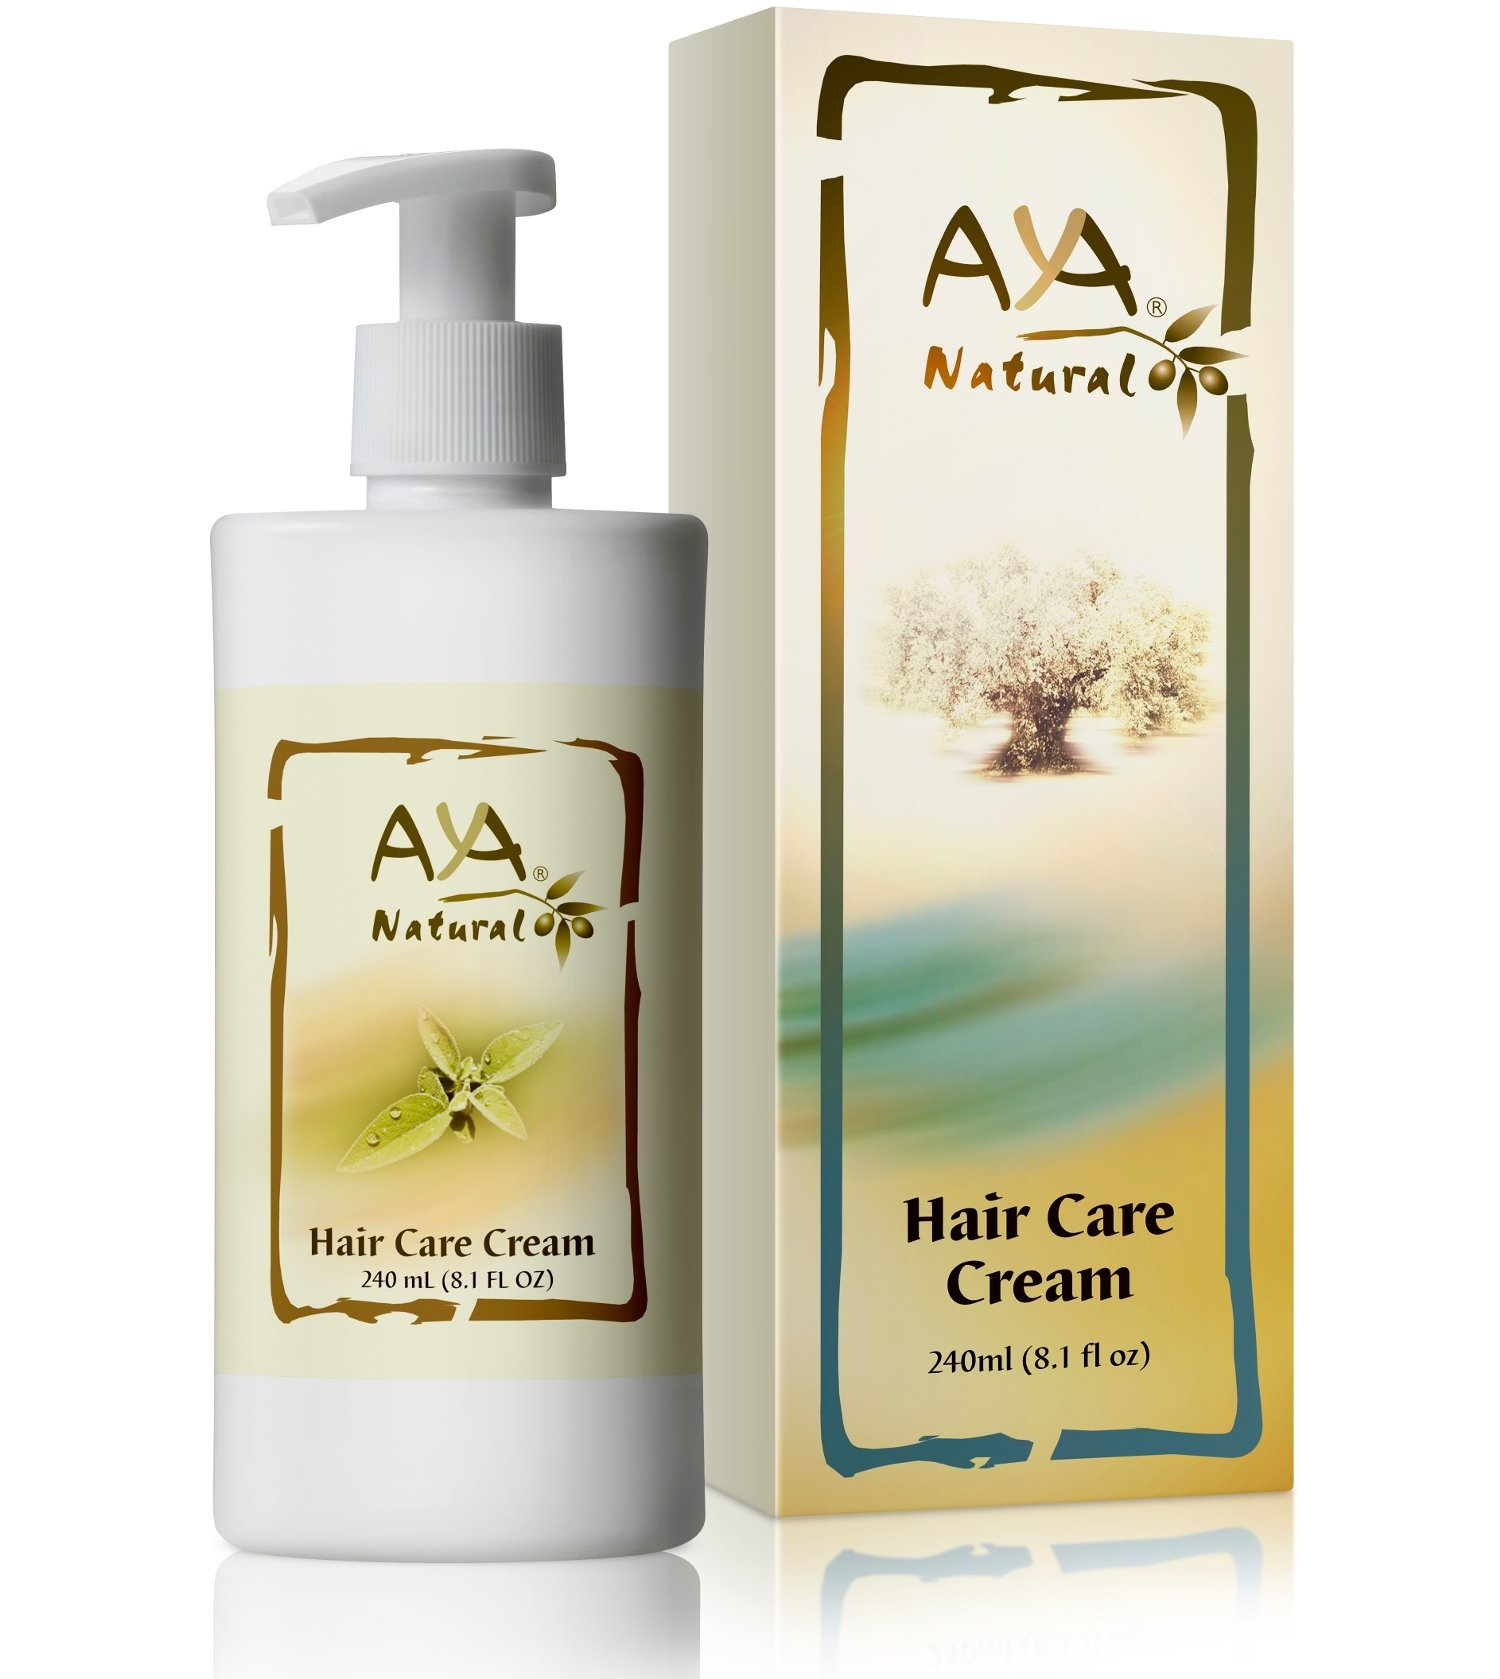 Leave-In Conditioner Hair Moisturizer Cream - Vegan 100% Natural Paraben Free Anti Frizz Nourishing Hair Care 8.1 oz - Olive, Jojoba, Coconut and Rosemary Oils Blend